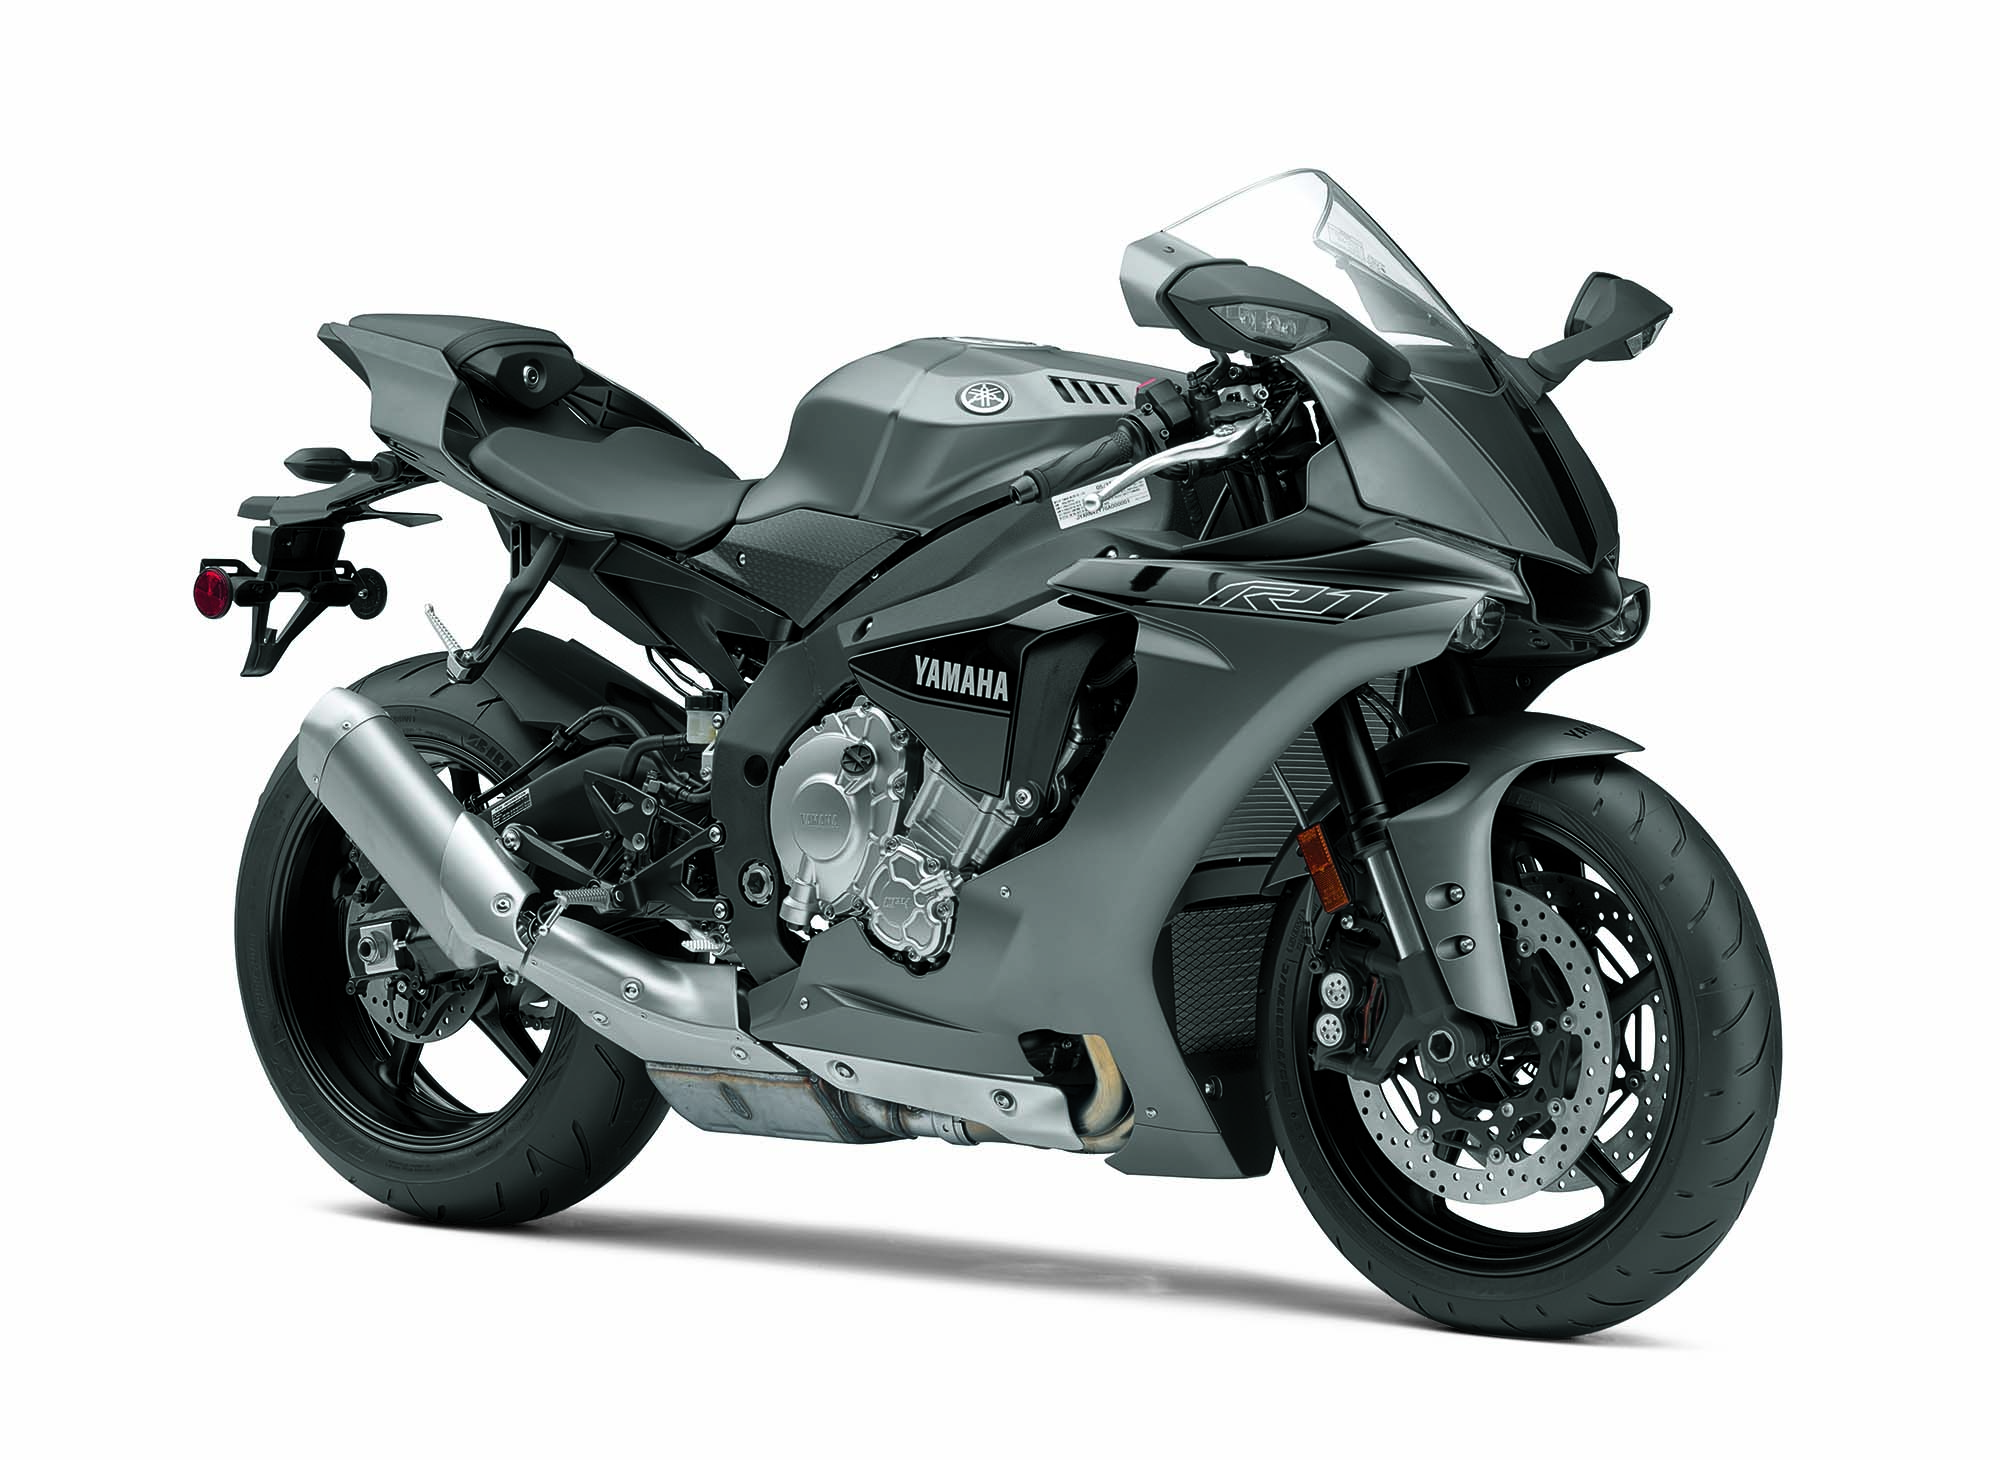 2016 yamaha yzf r1 video search engine at